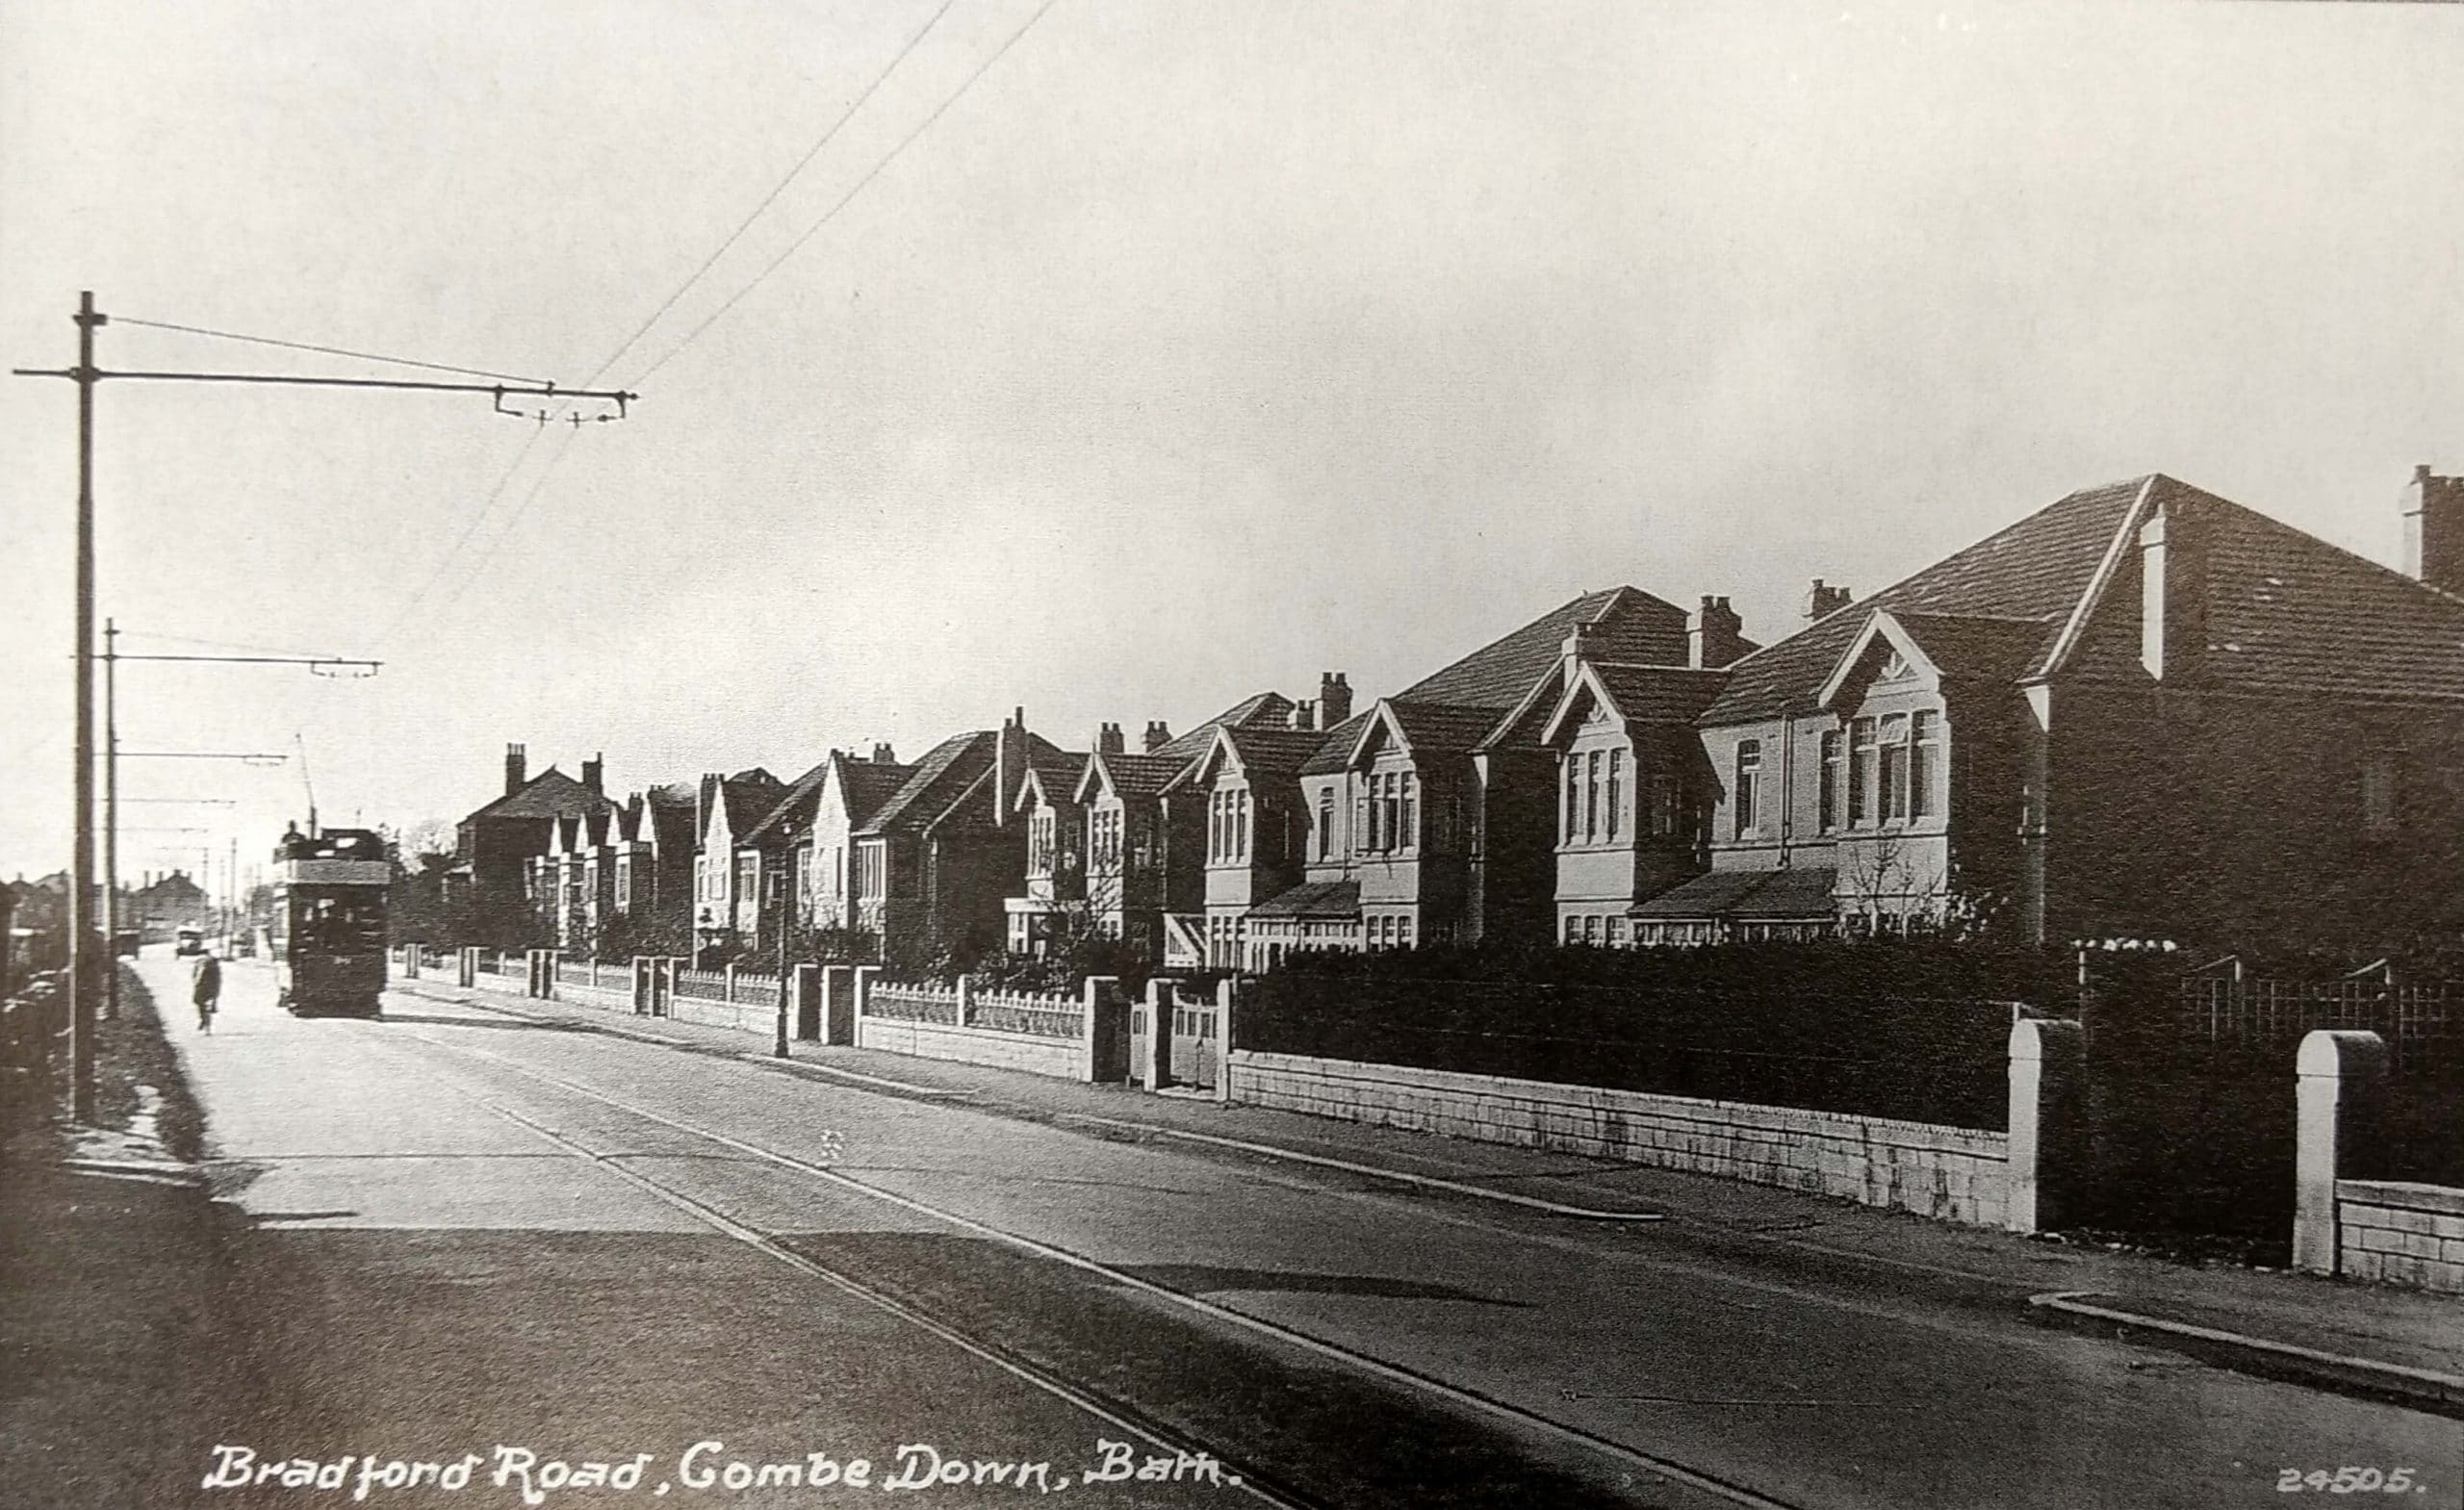 Bradford Road, Combe Down about 1930